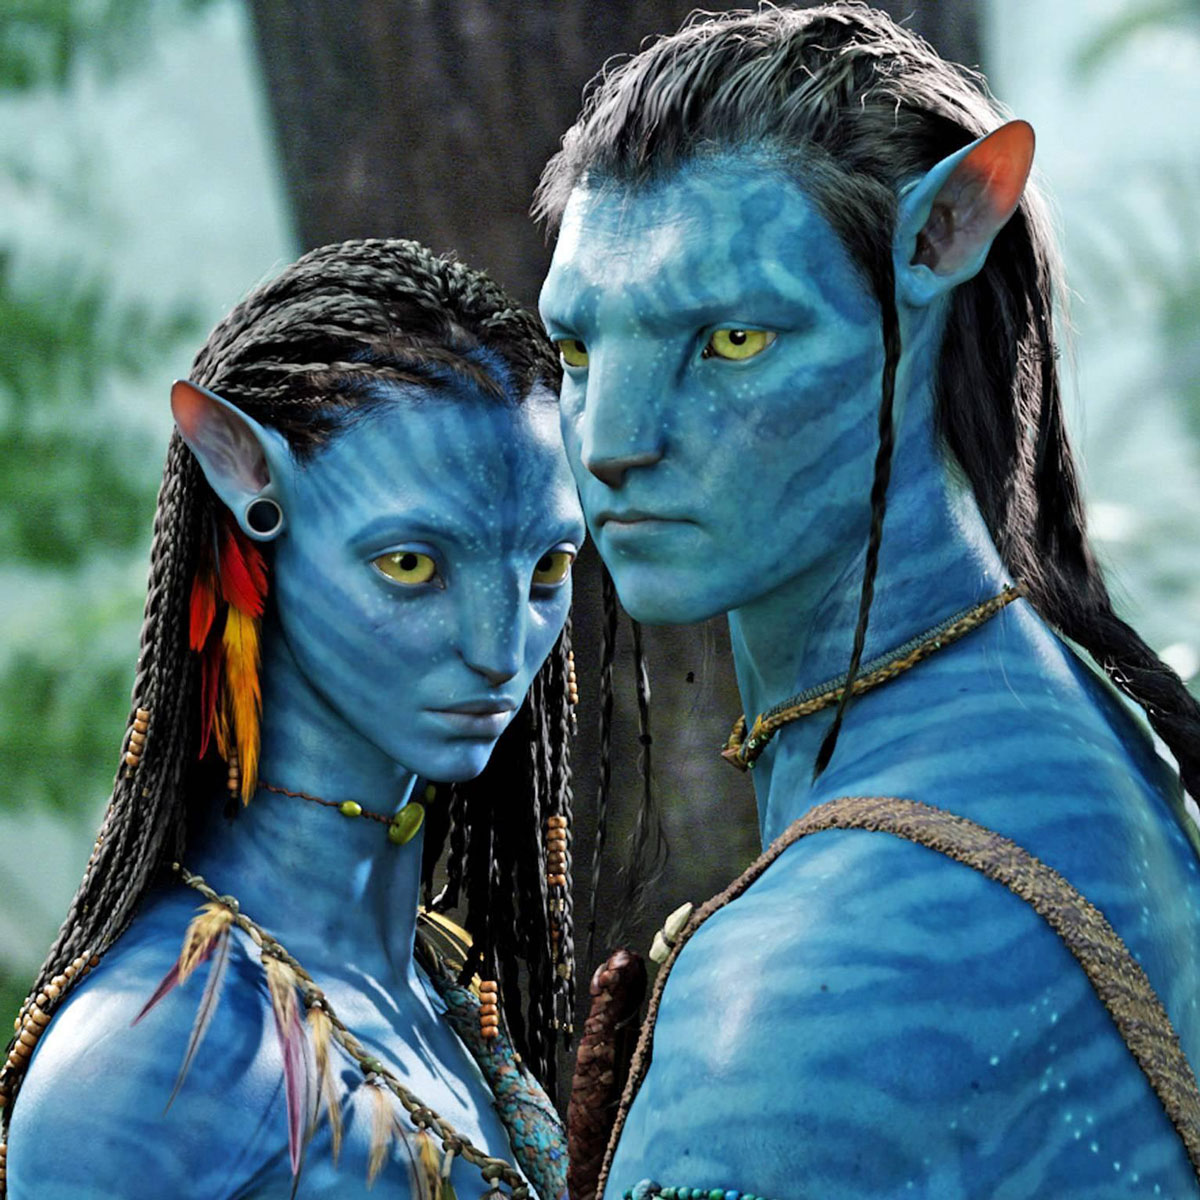 Main characters from the film Avatar